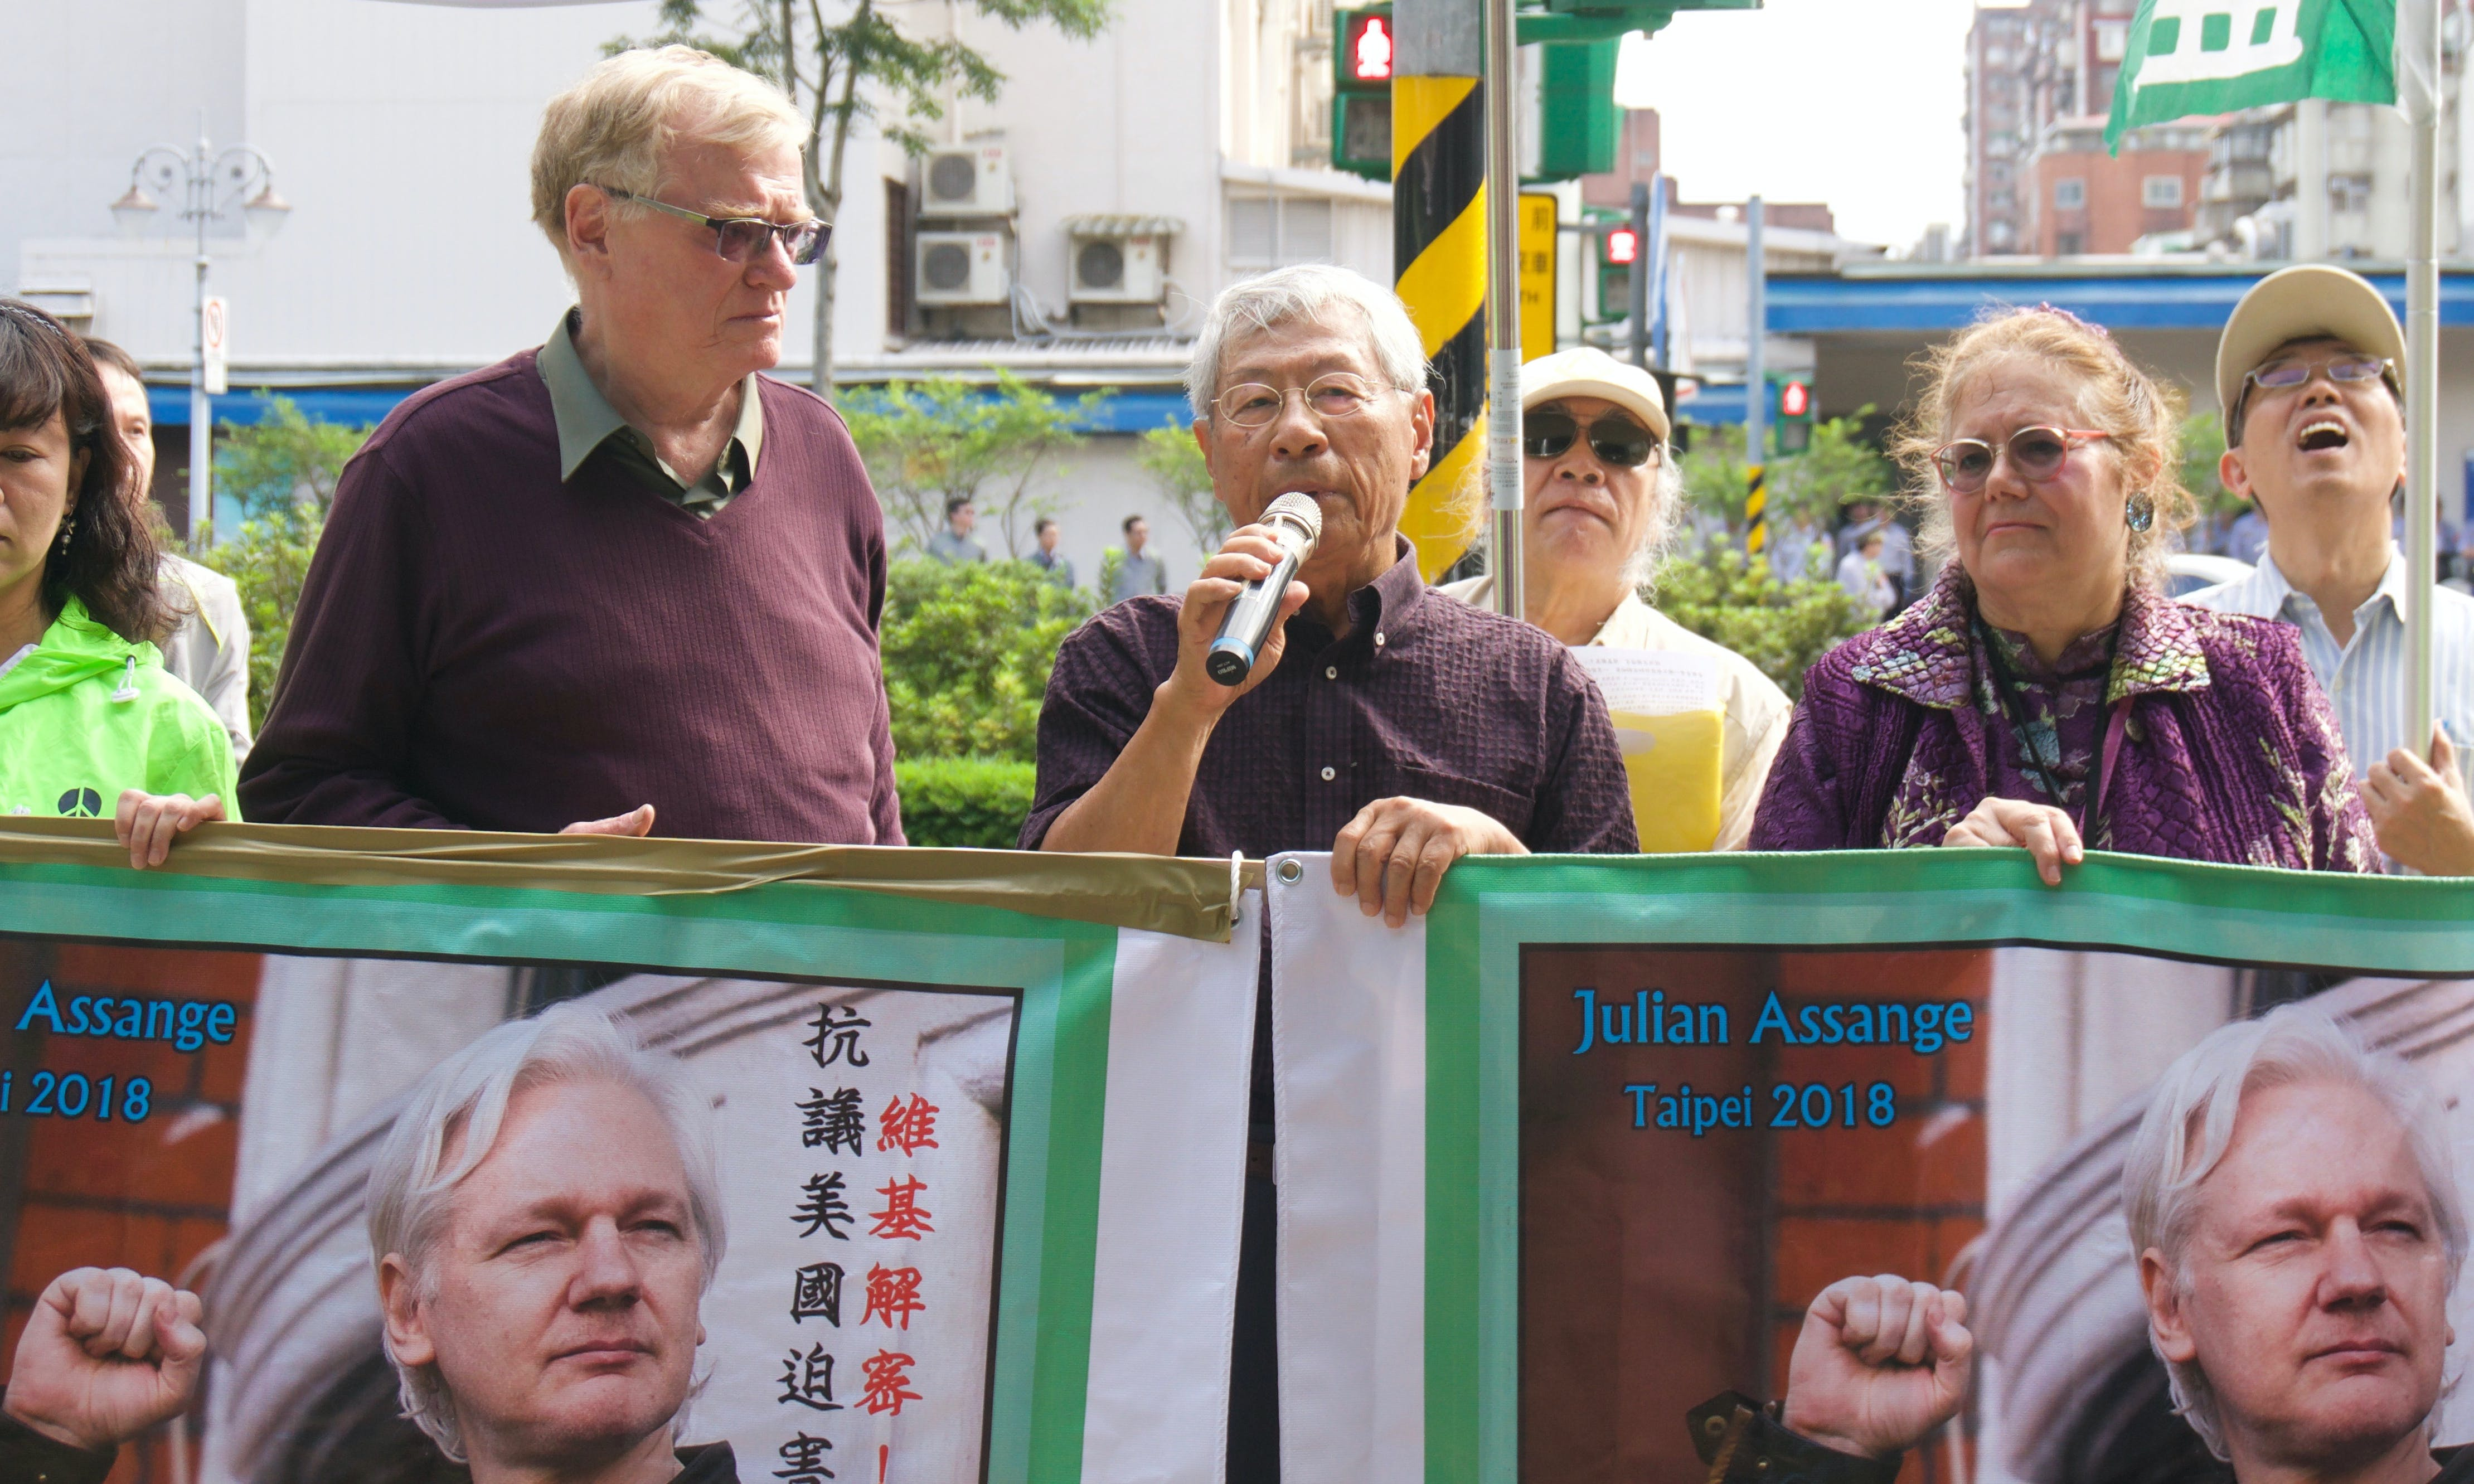 Protesters Gather in Taipei to Condemn US 'Persecution' of Julian Assange